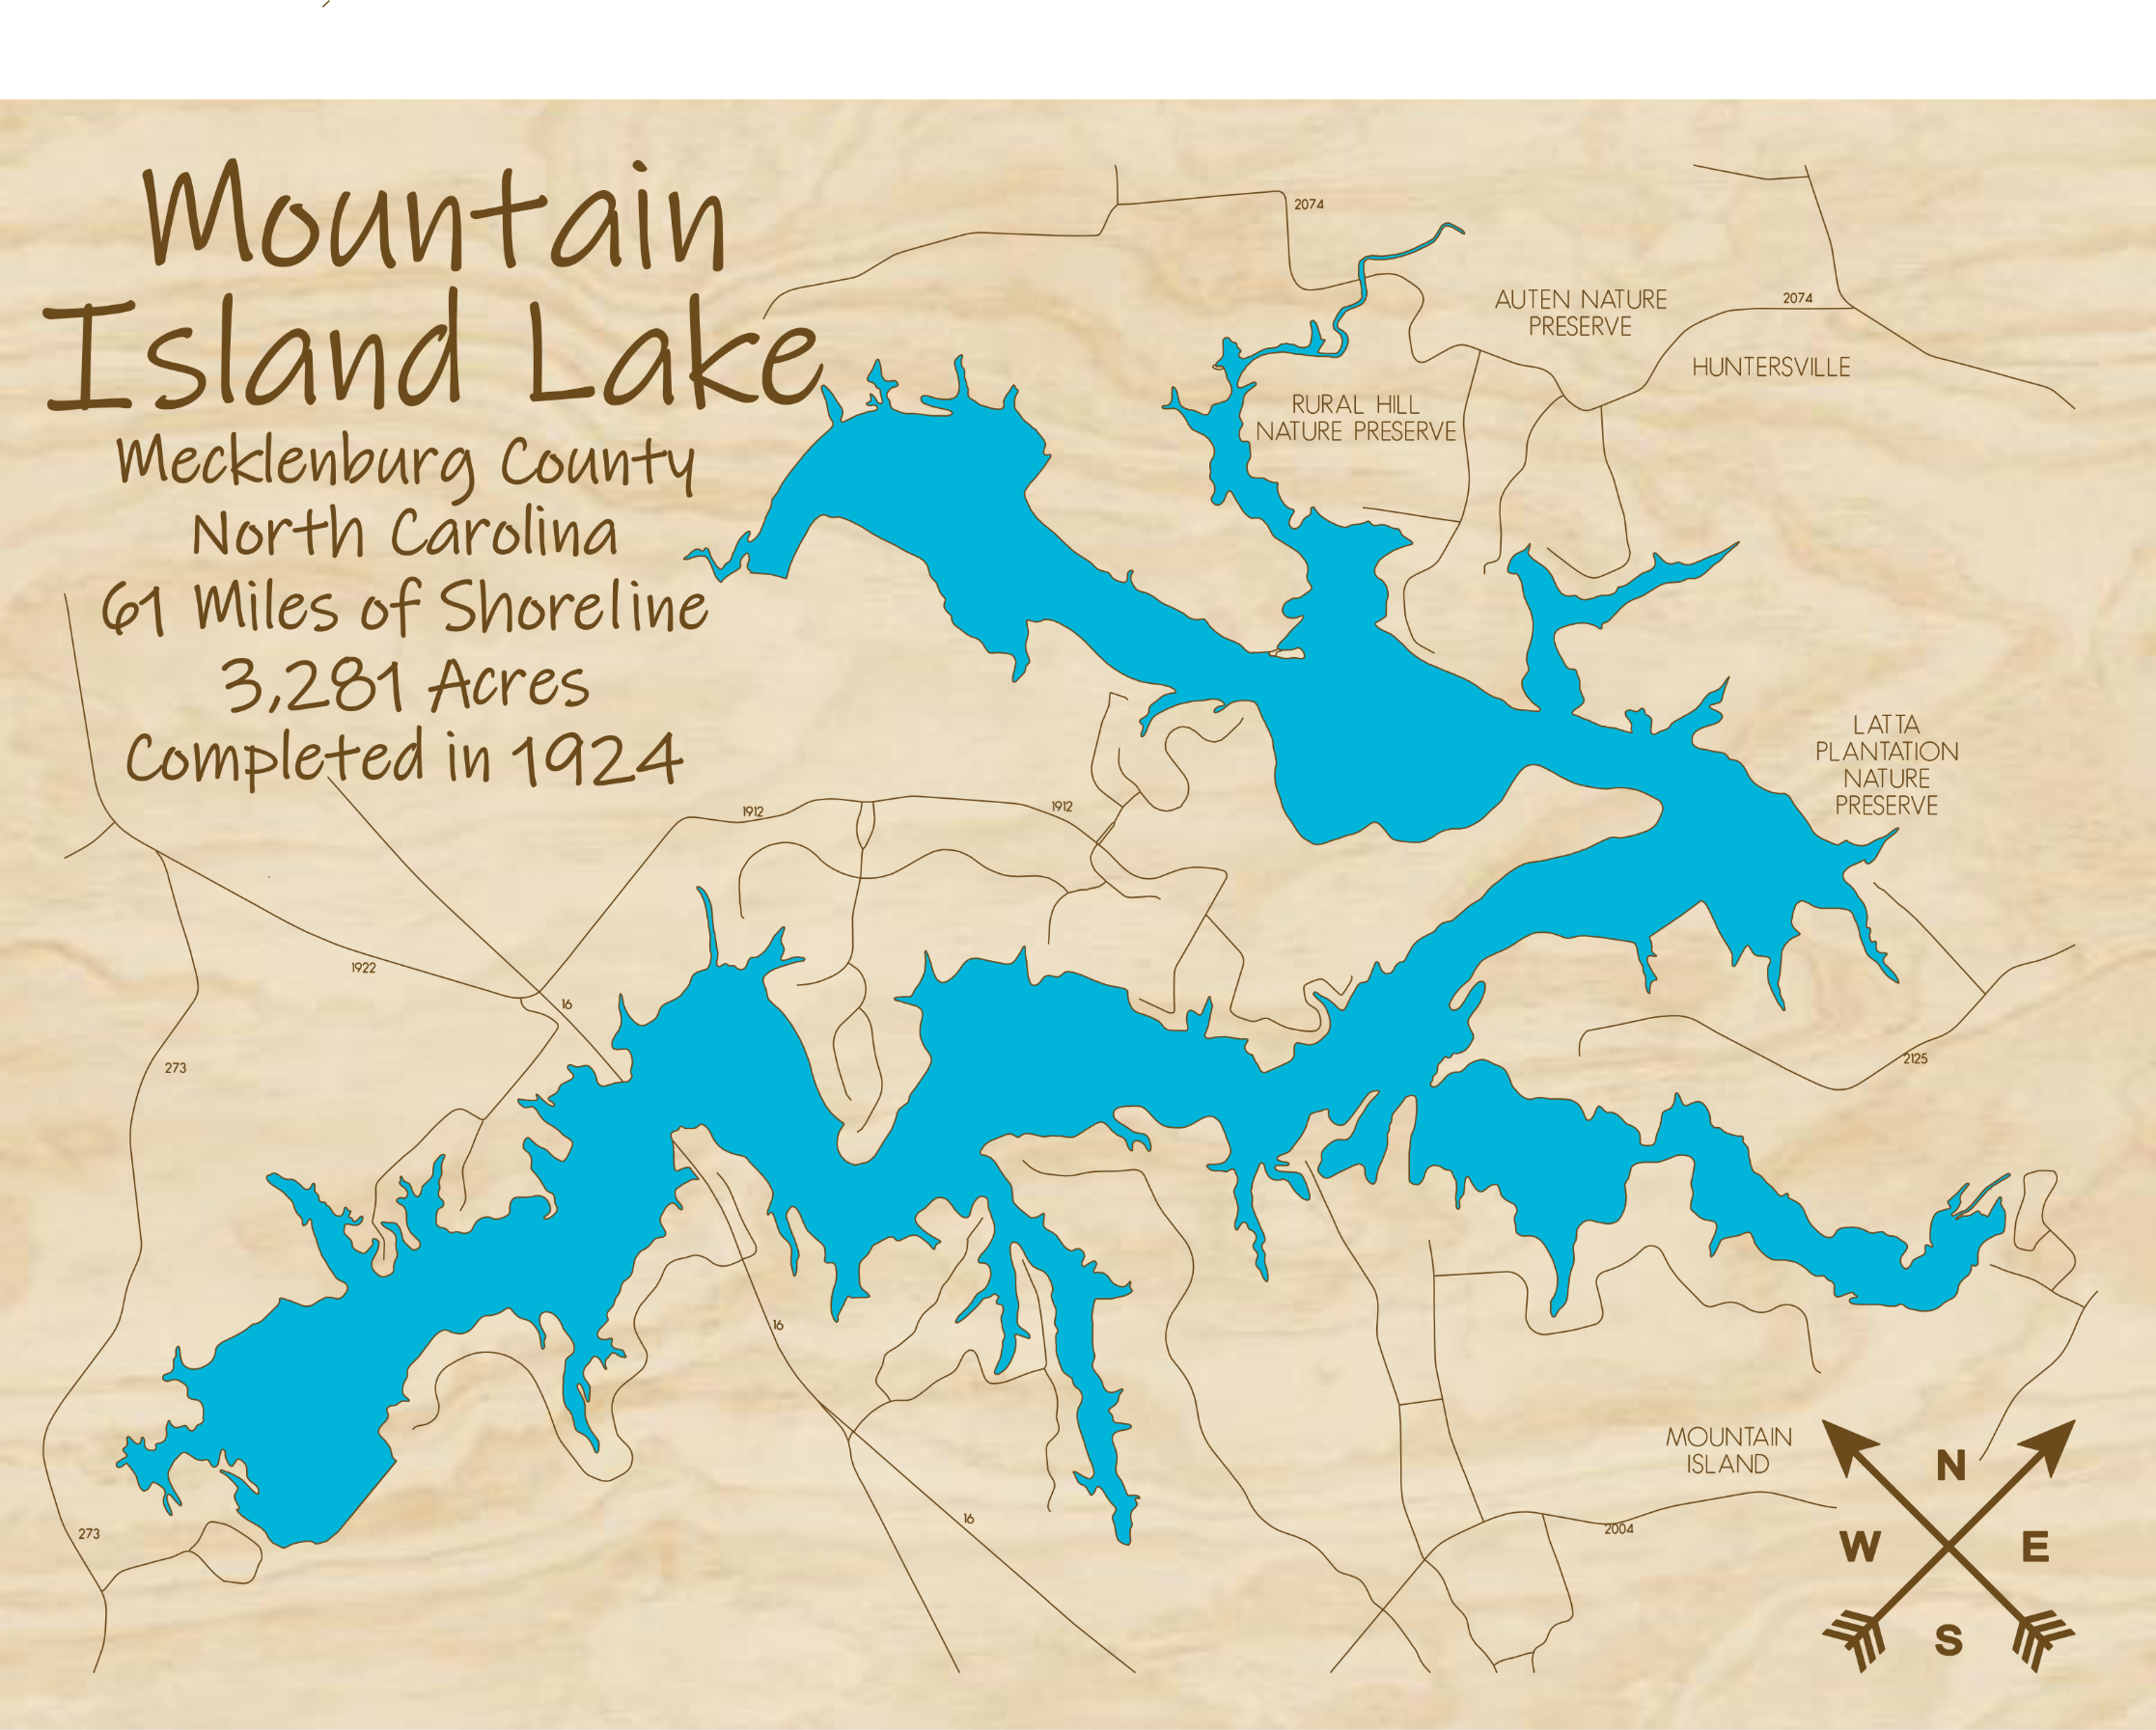 Mountain Island Lake Multi-layered Wood Lake Map